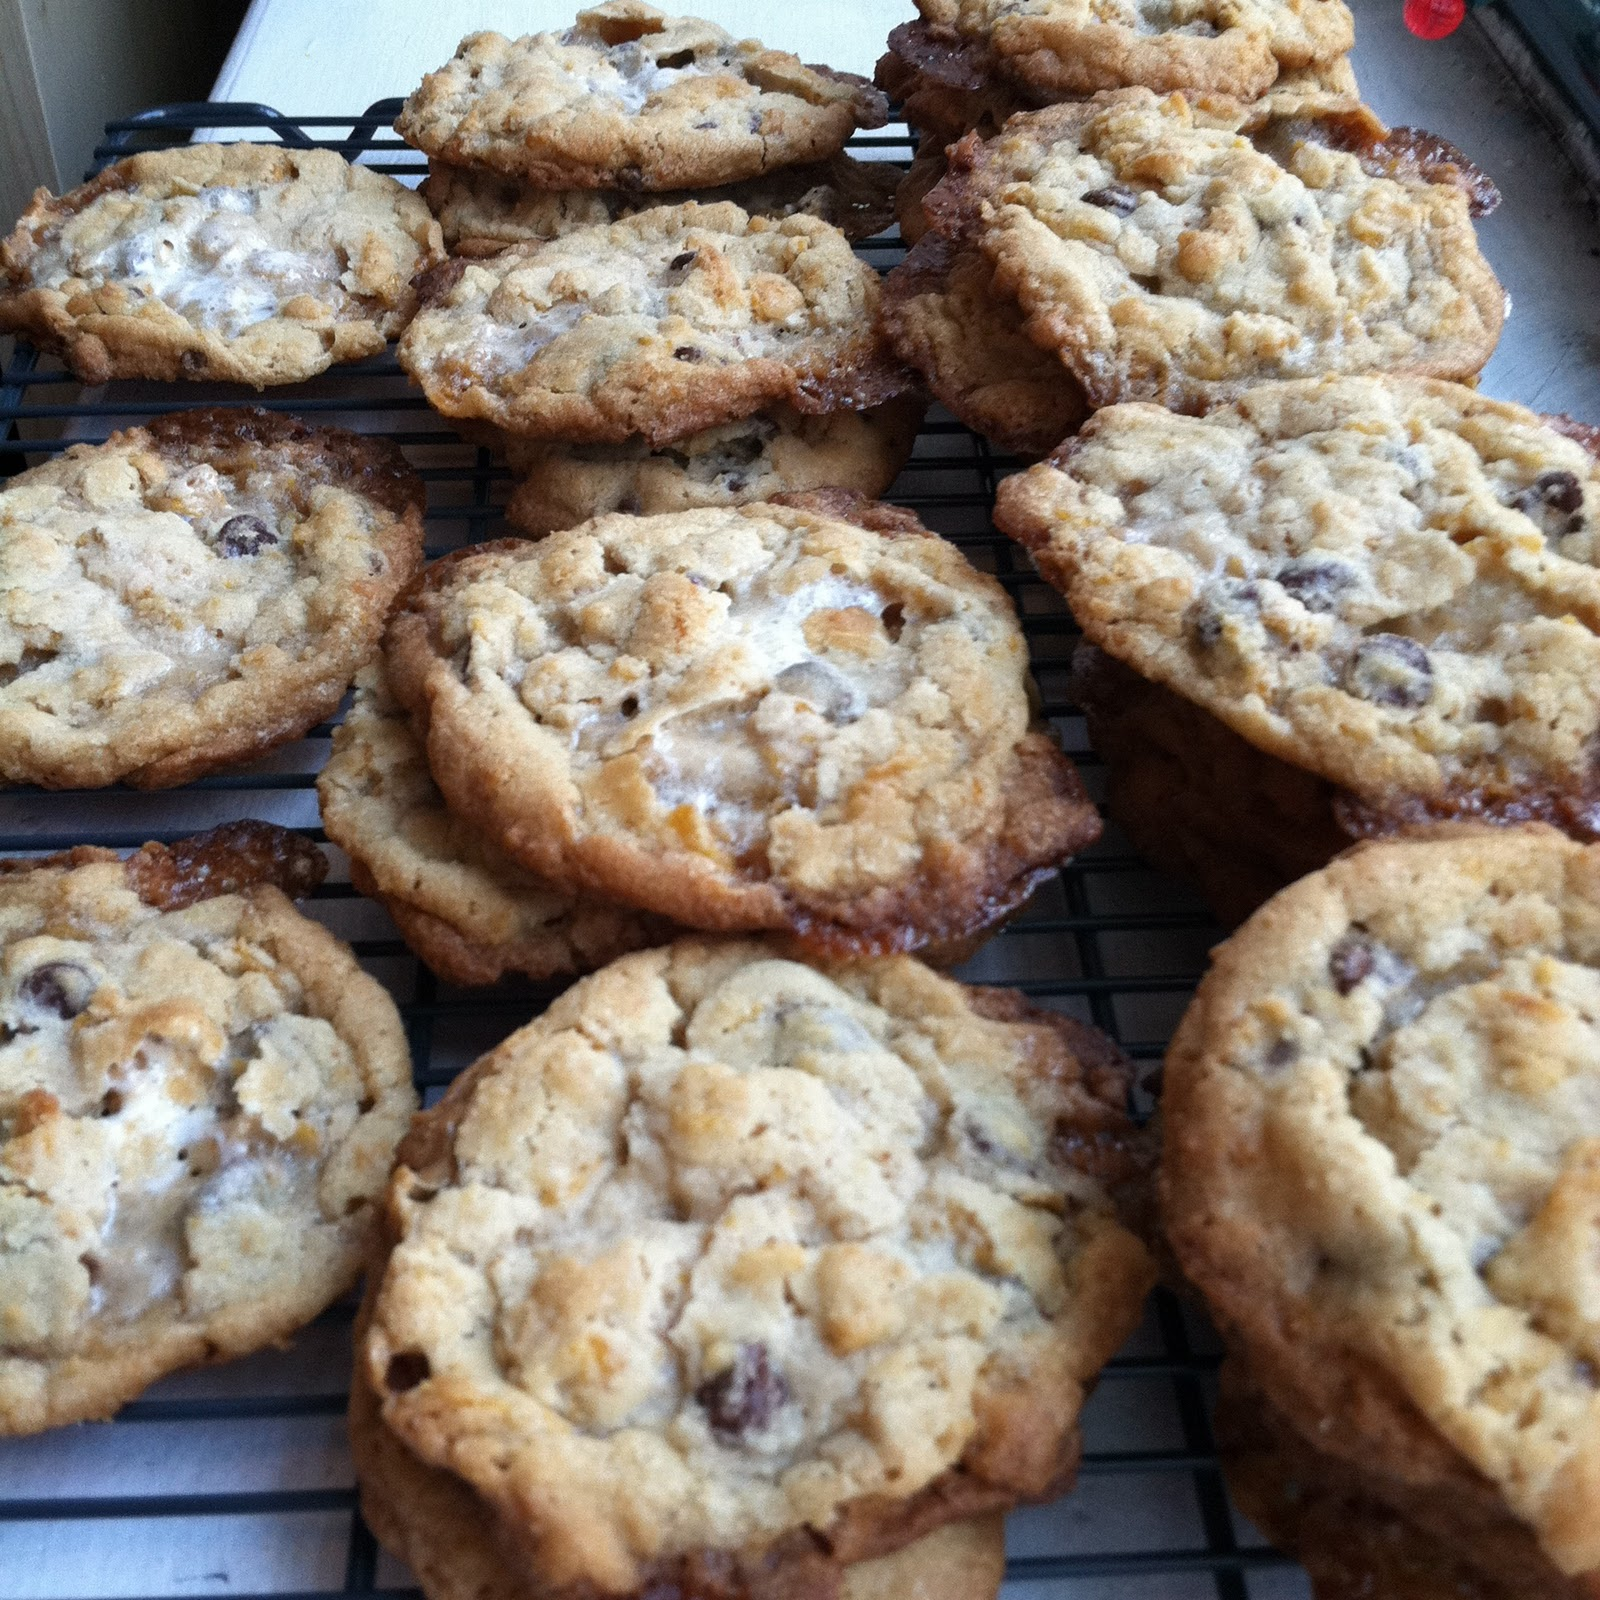 ... Cornflake Chocolate Chip Marshmallow Cookies can also add chocolate